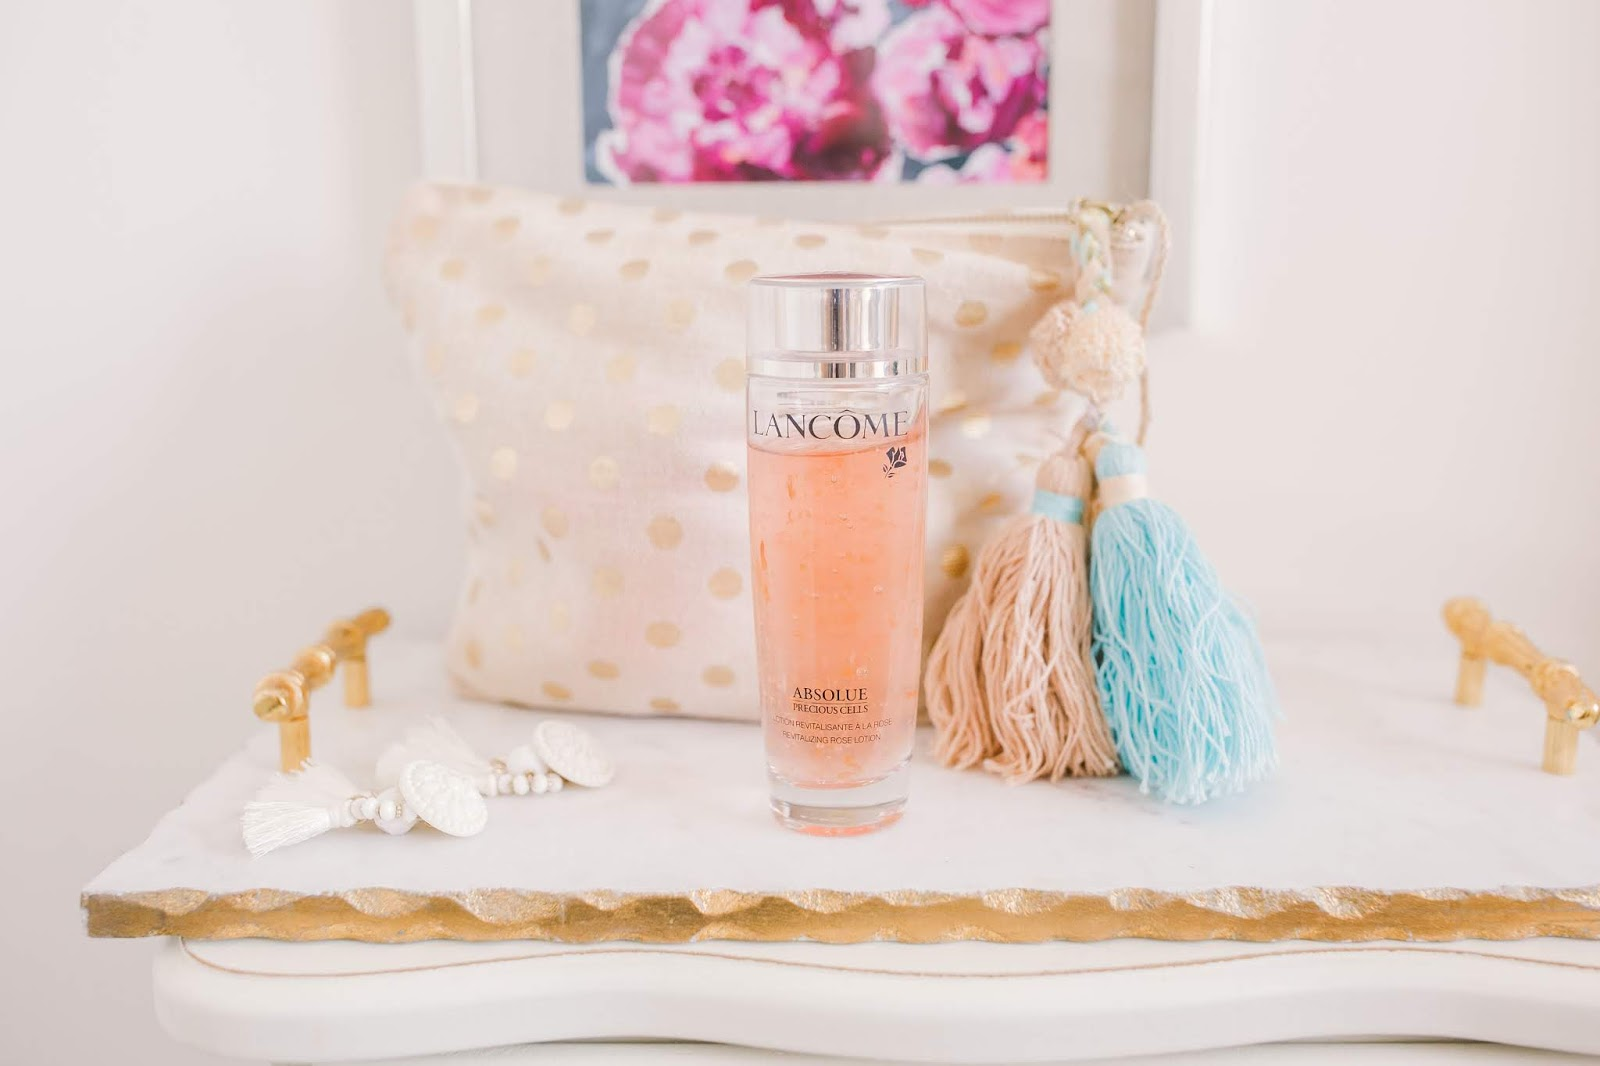 Bijuleni - 5  Products I use to Maintain My Skin Clear of Acne - Absolue Precious Cells Revitalizing Rose Lotion LANCÔME